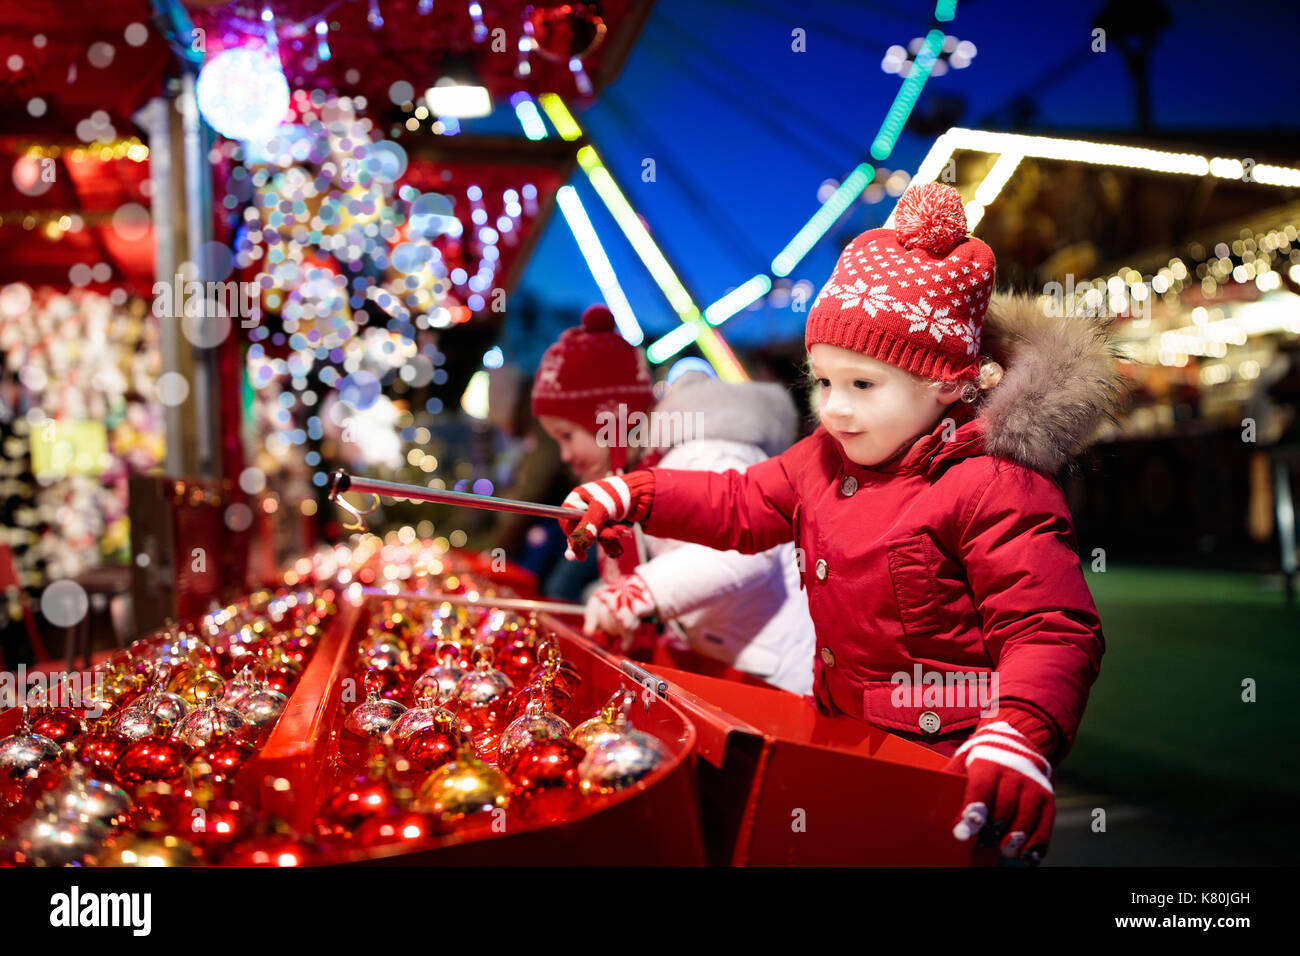 Kids at traditional Christmas fair. Children and Xmas market on snowy evening. Family shopping Christmas gifts and presents. Boy and girl play hook a  sc 1 st  Alamy & Kids at traditional Christmas fair. Children and Xmas market on ...